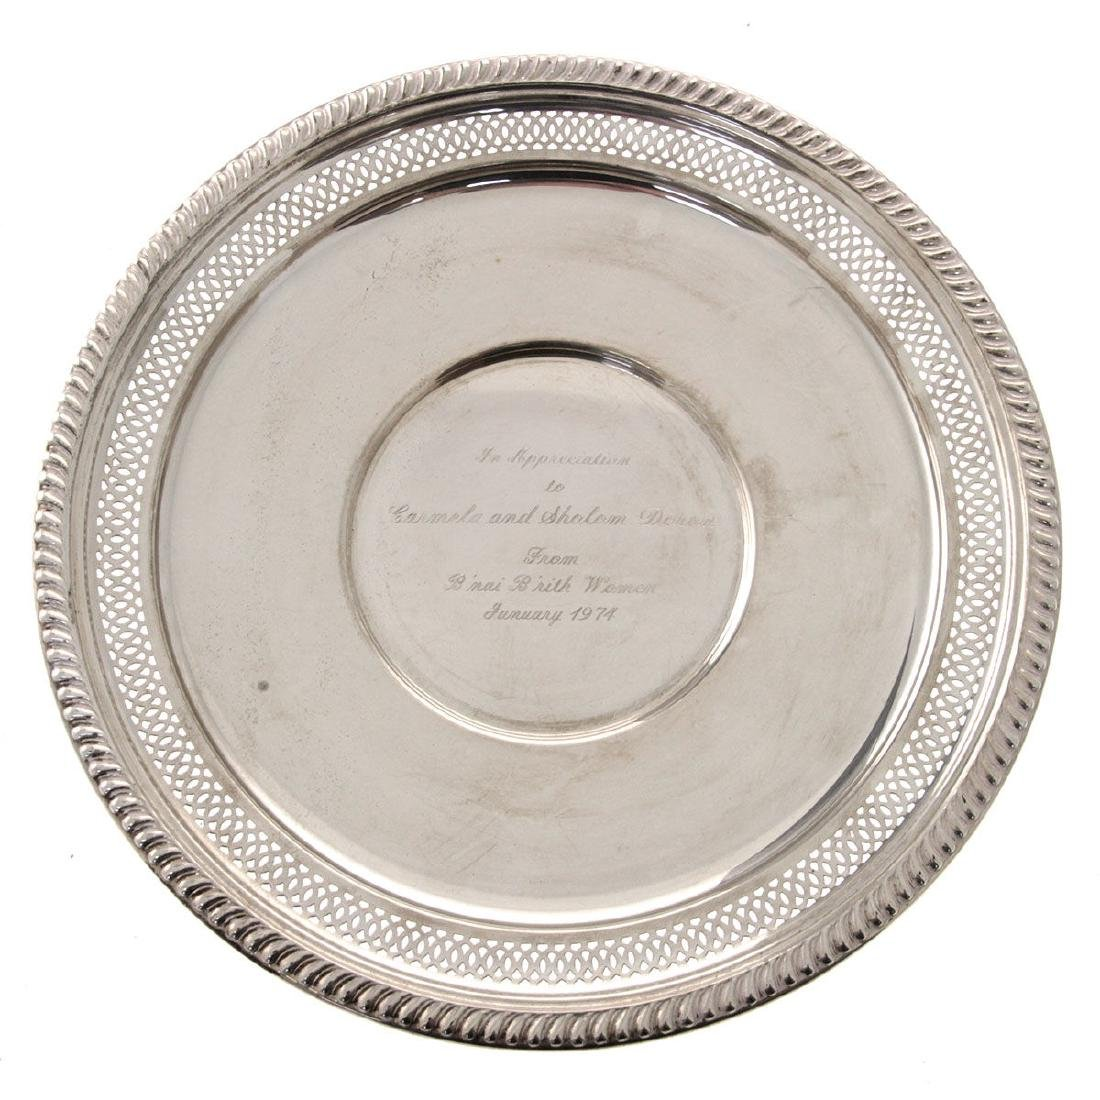 American Sterling Silver Dish by Empire with Dedication